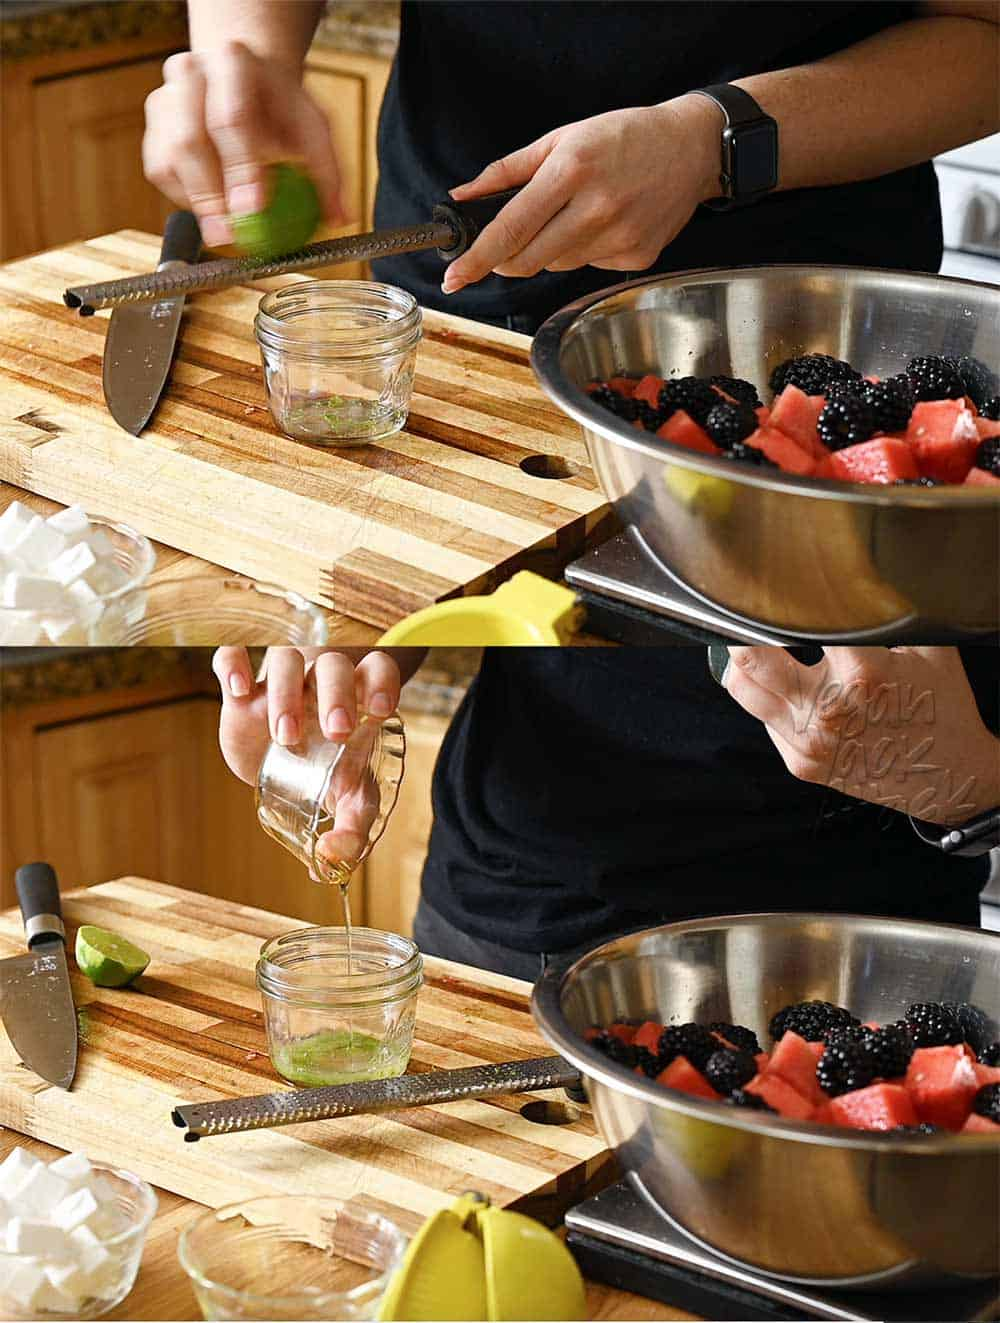 Image collage of zesting lime and adding agave nectar to vinaigrette